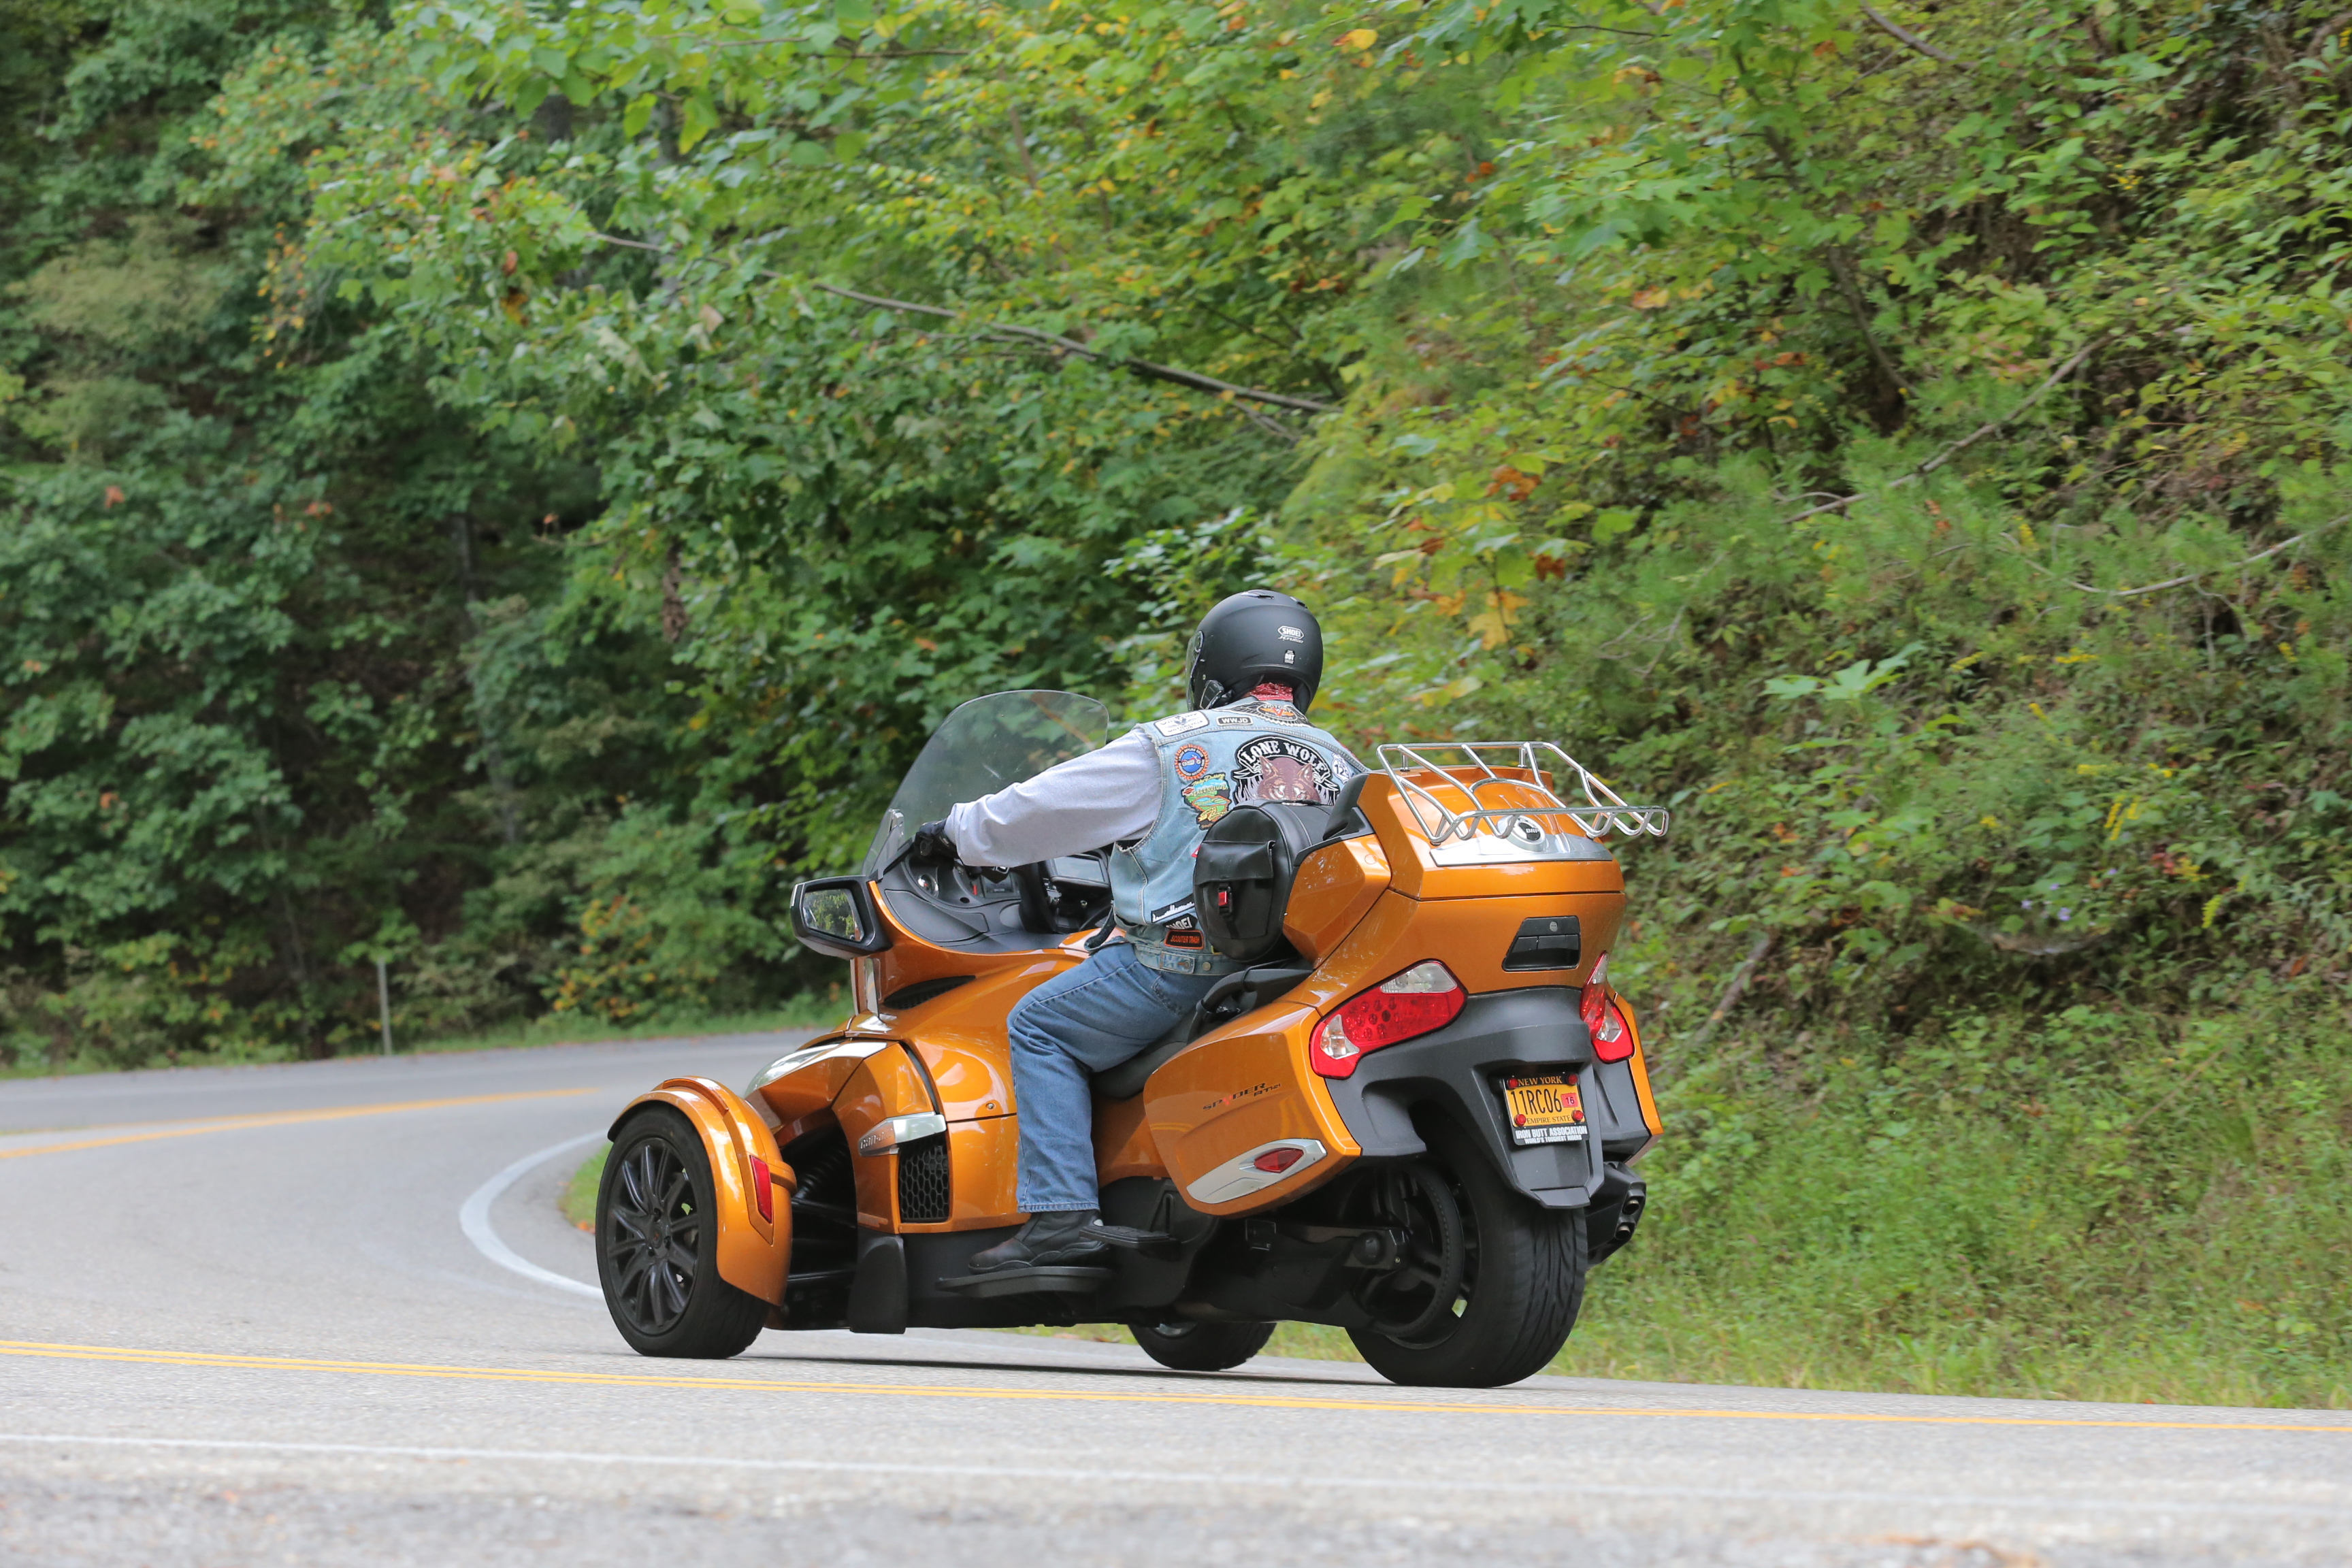 129 Slayer rydes are back in season | walter thinnes